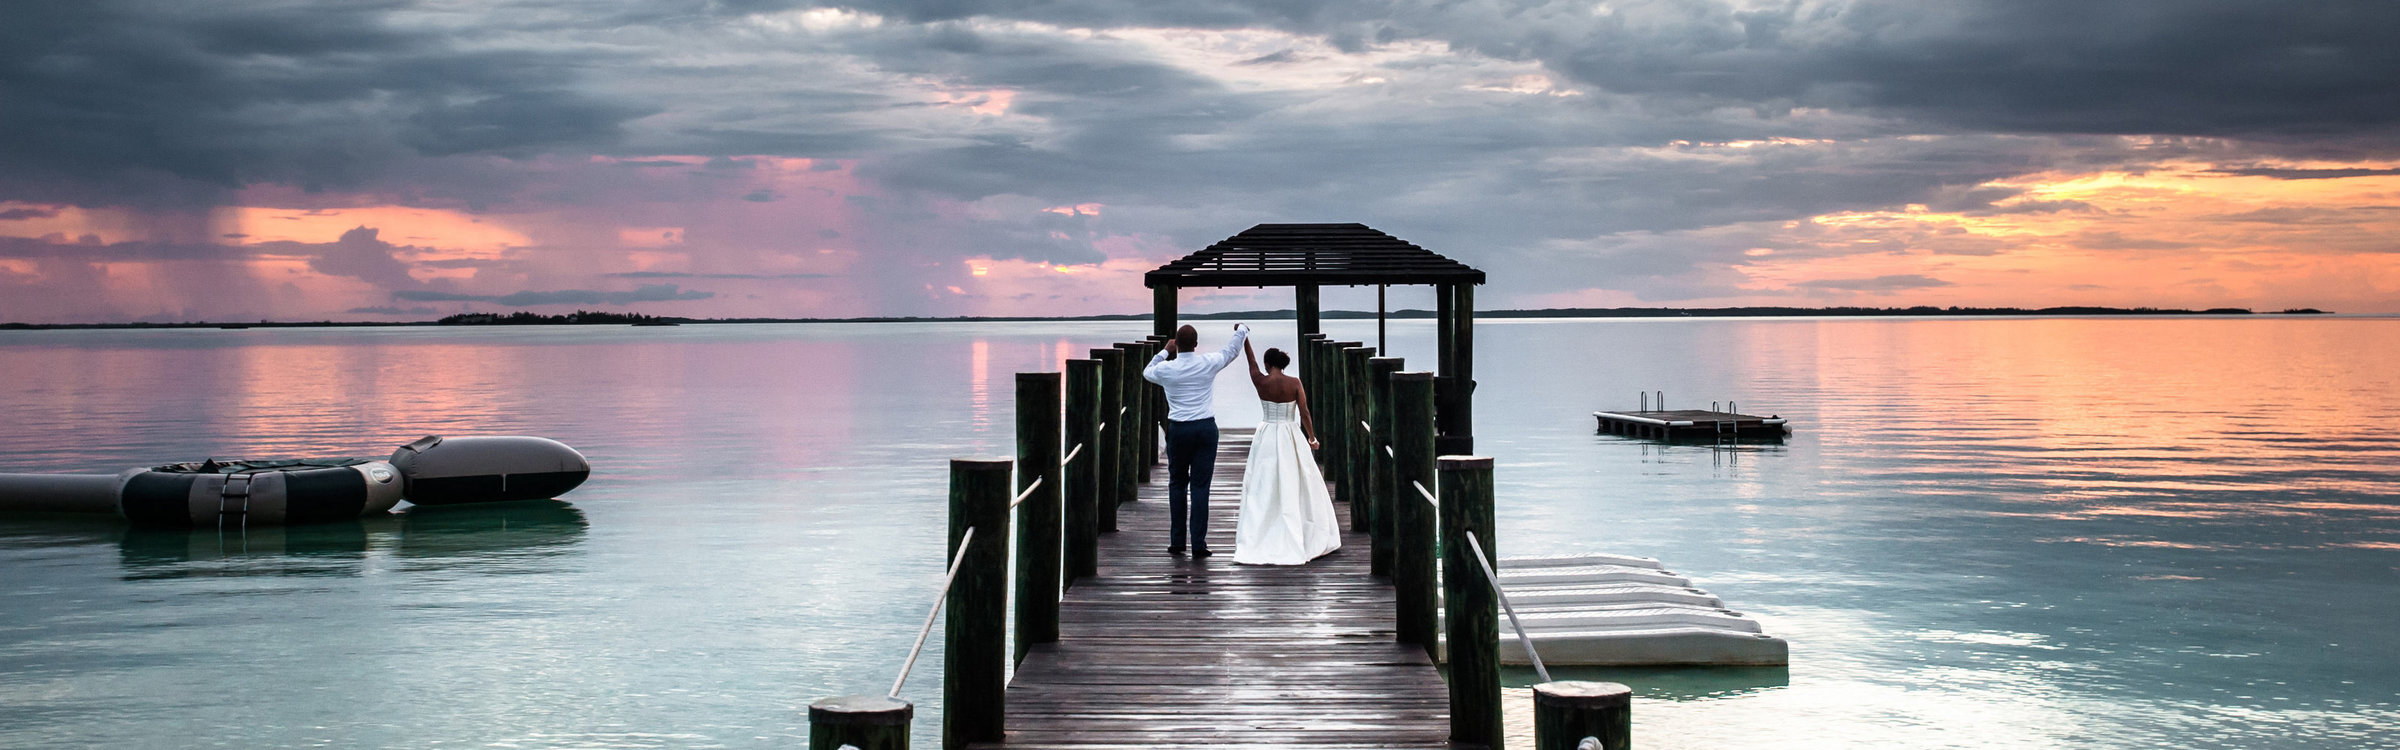 Destination-Wedding-Bride-and-Groom-on-Dock-Harbour-Island-Bahamas-copy